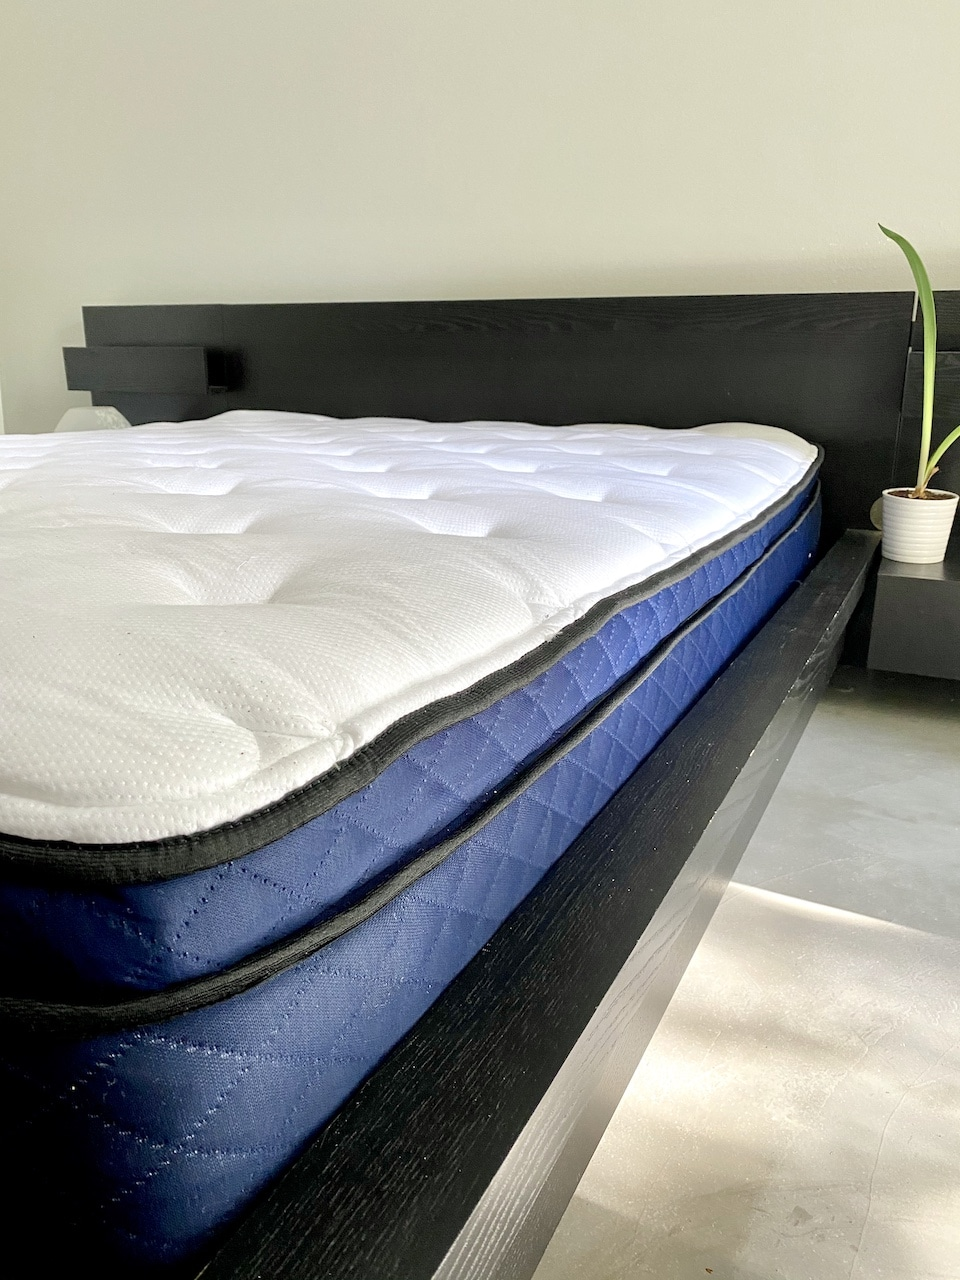 Review of the Silk & Snow Hybrid Mattress